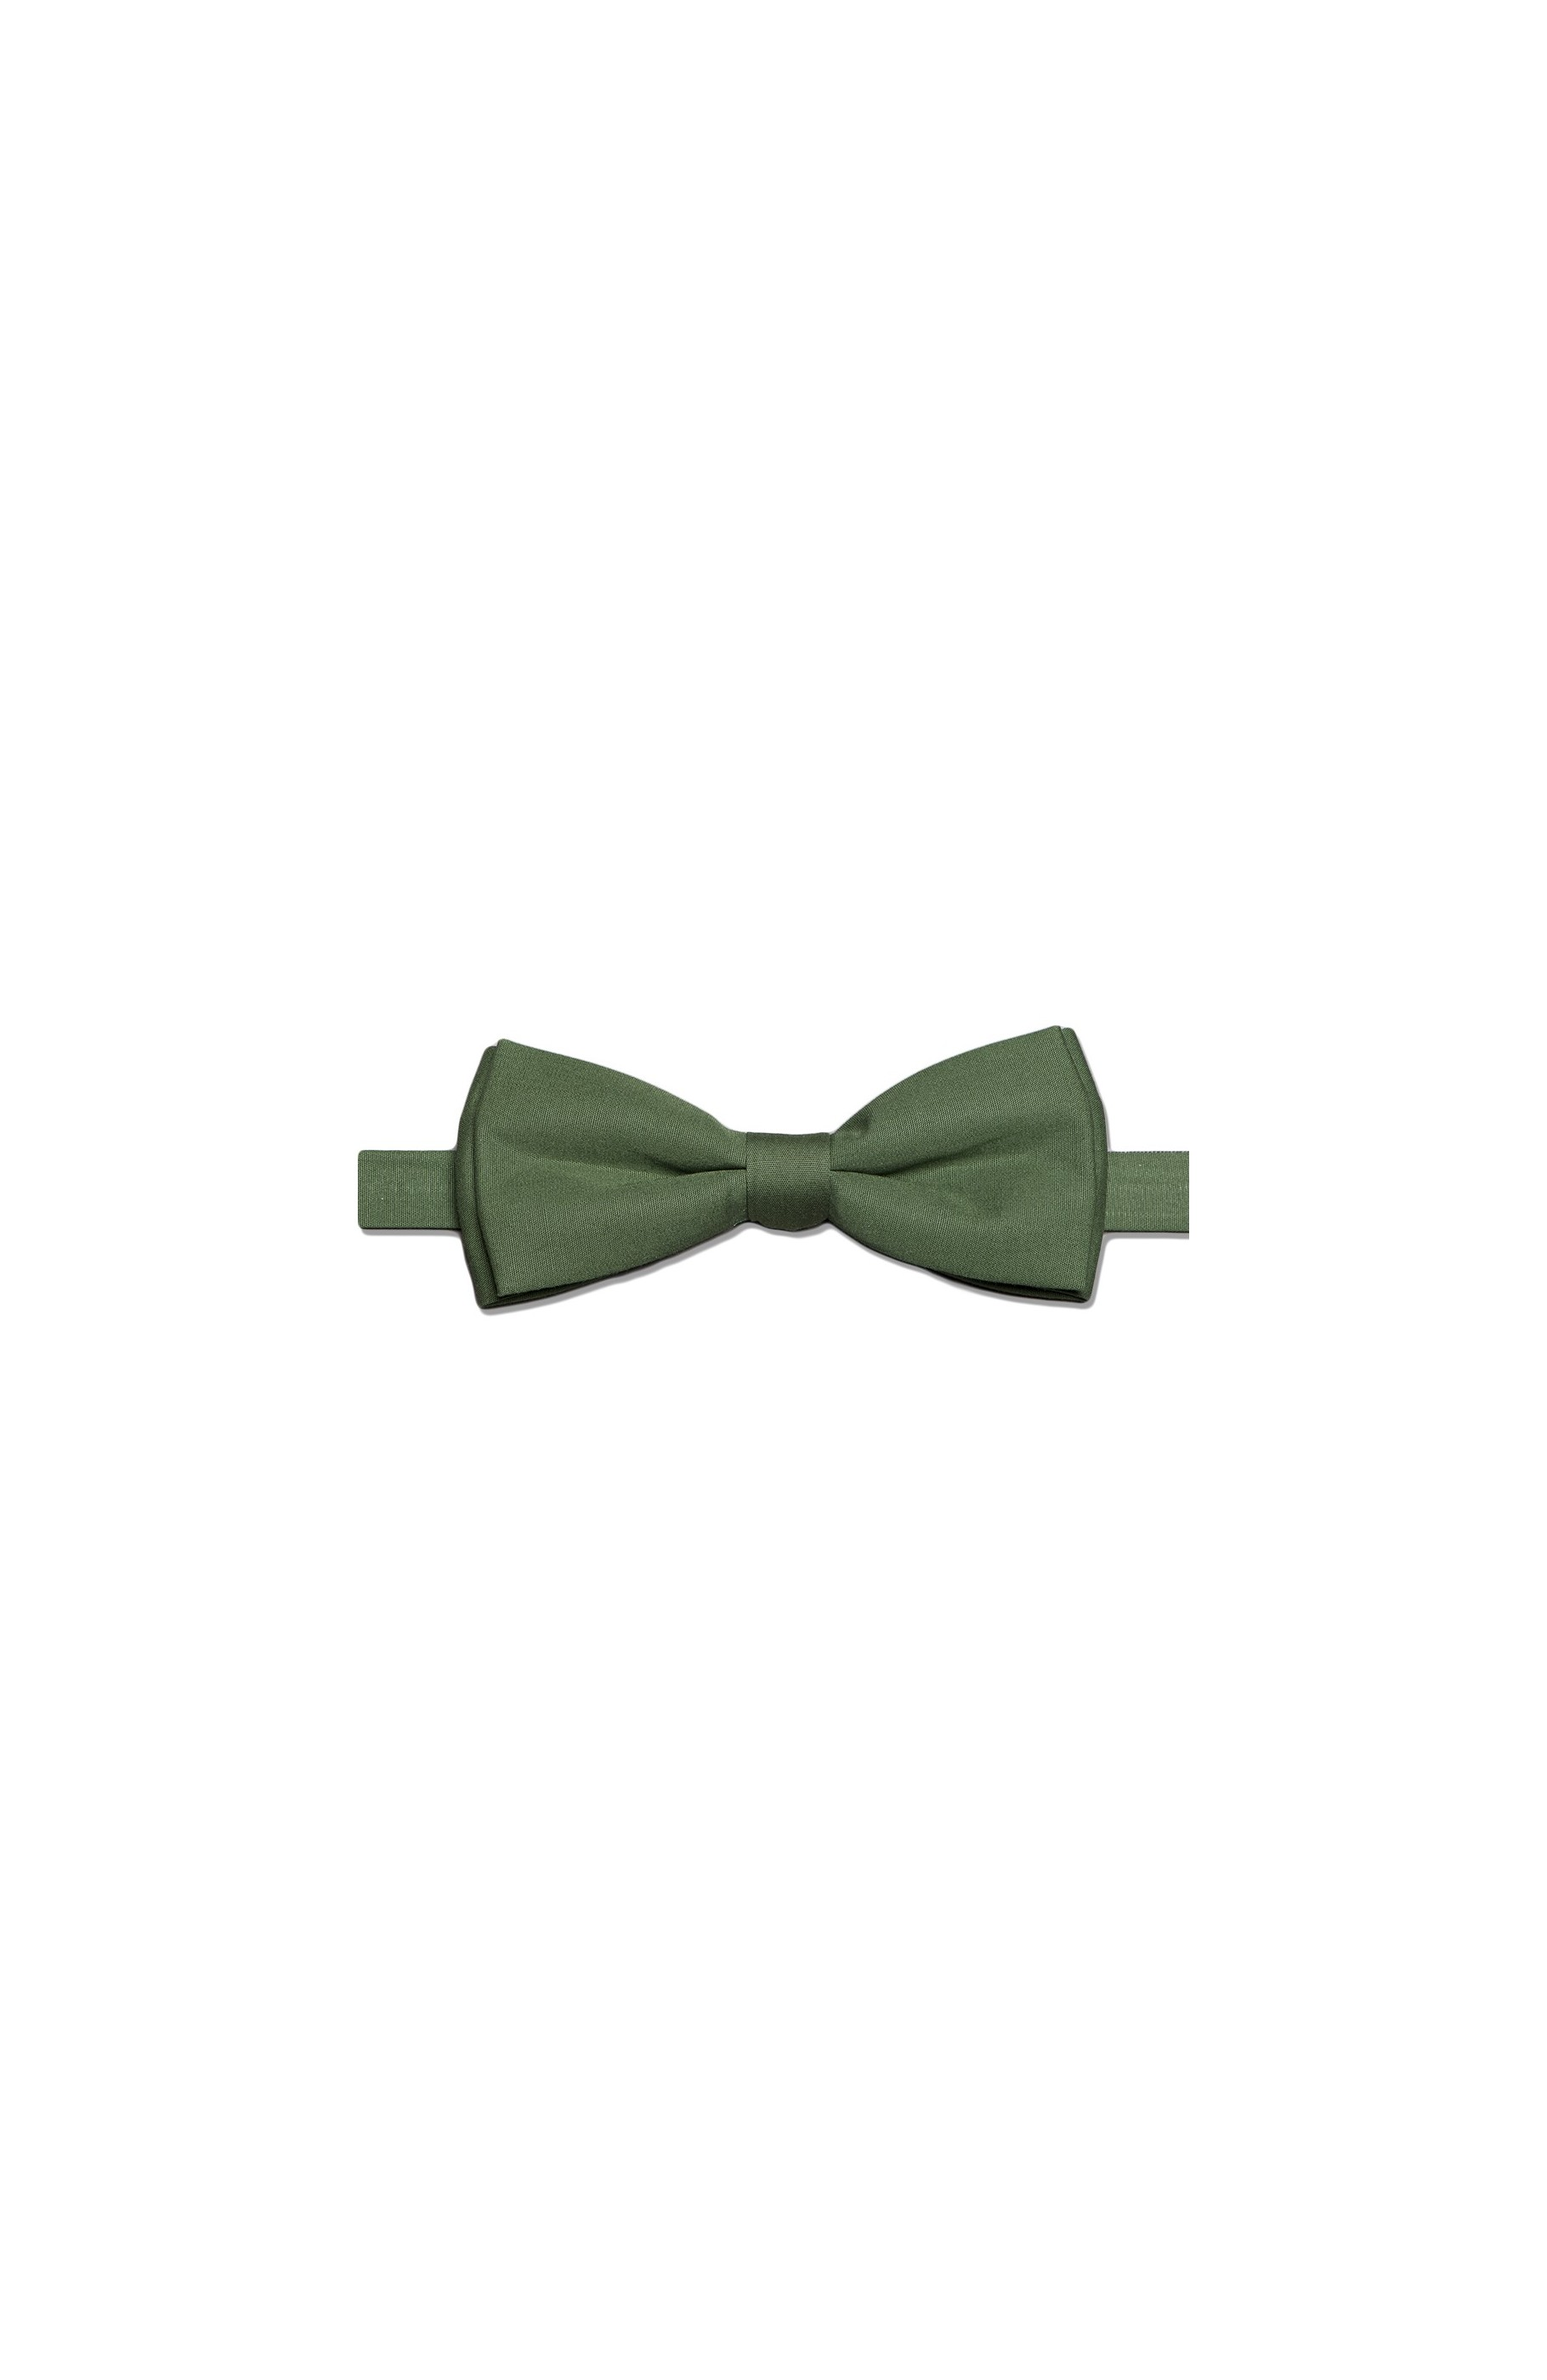 Majesté Couture Paris: Green bow tie | Accessories,Accessories > Bow ties -  Hiphunters Shop